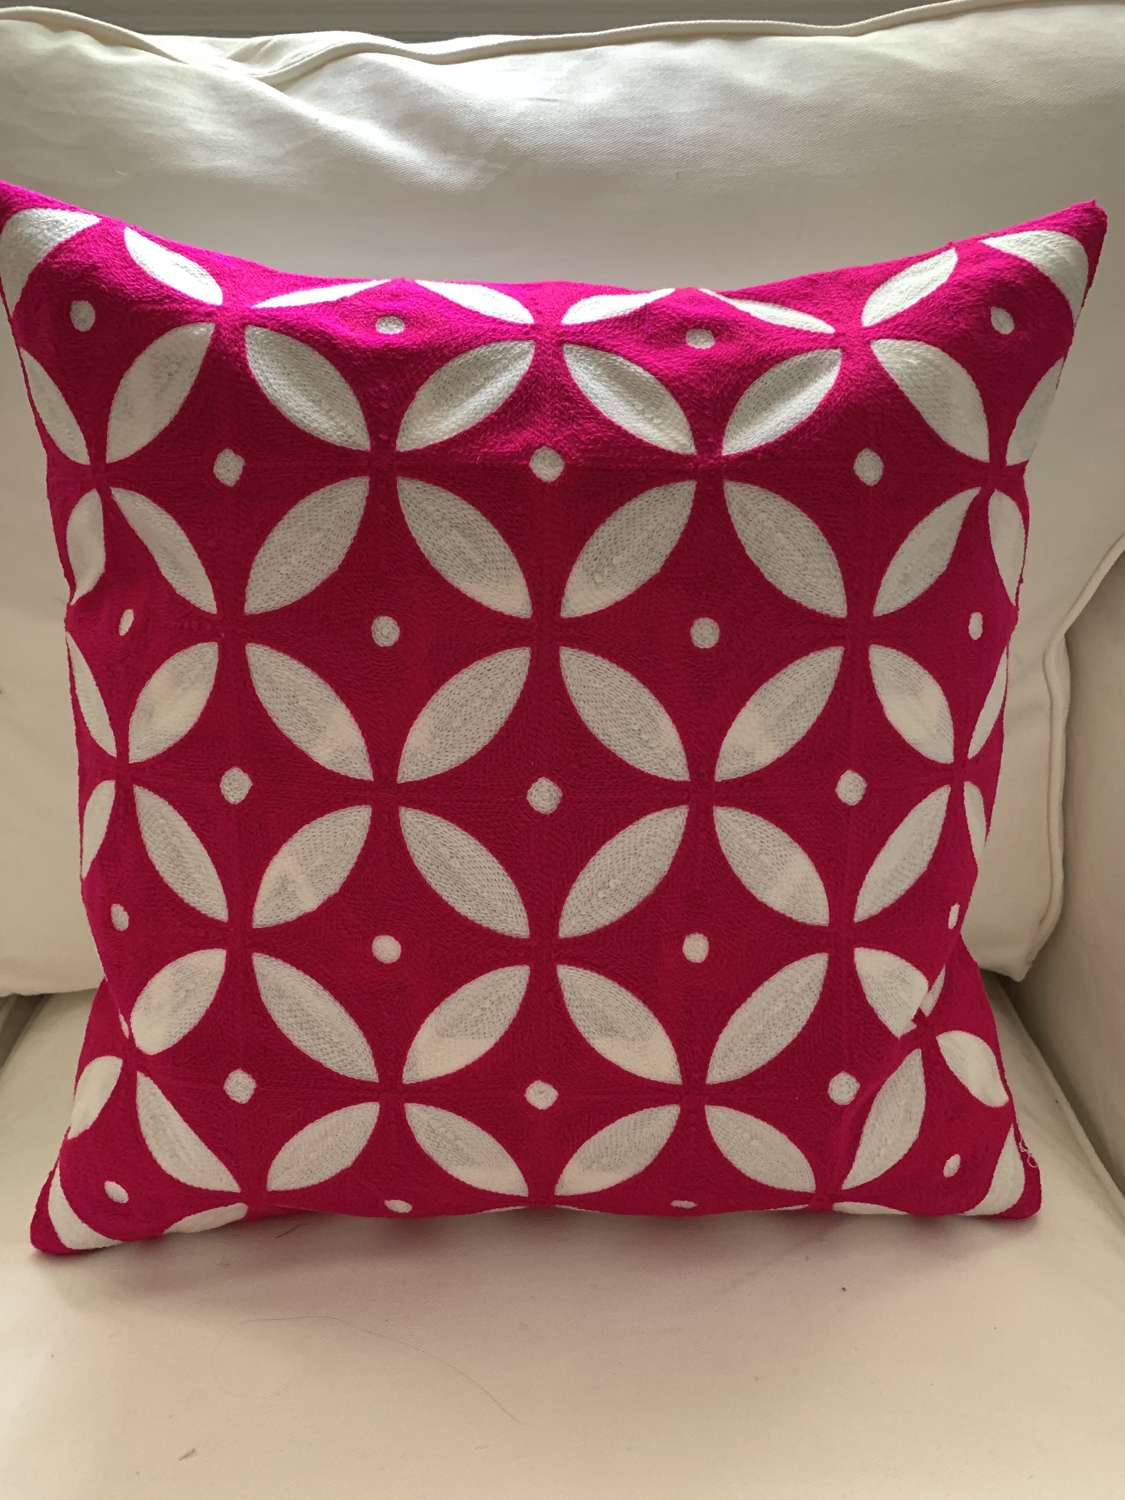 Shocking pink crewel work cushion and feather pad